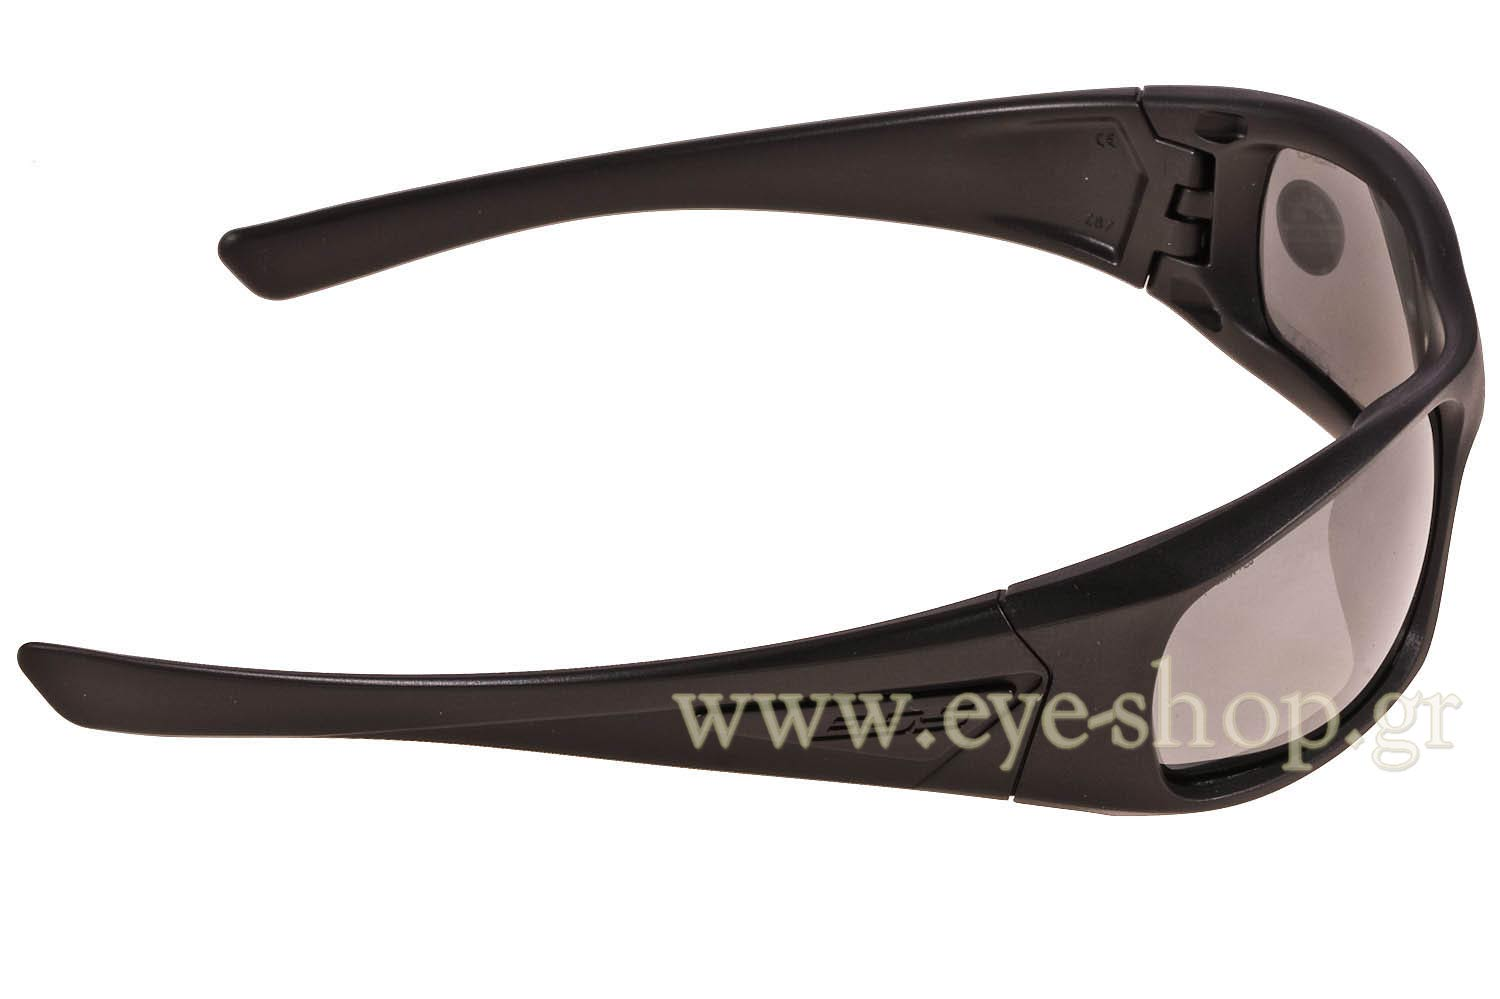 ESS μοντέλο 5B στο χρώμα EE9006-03 Black - Mirrored Gray Polarized